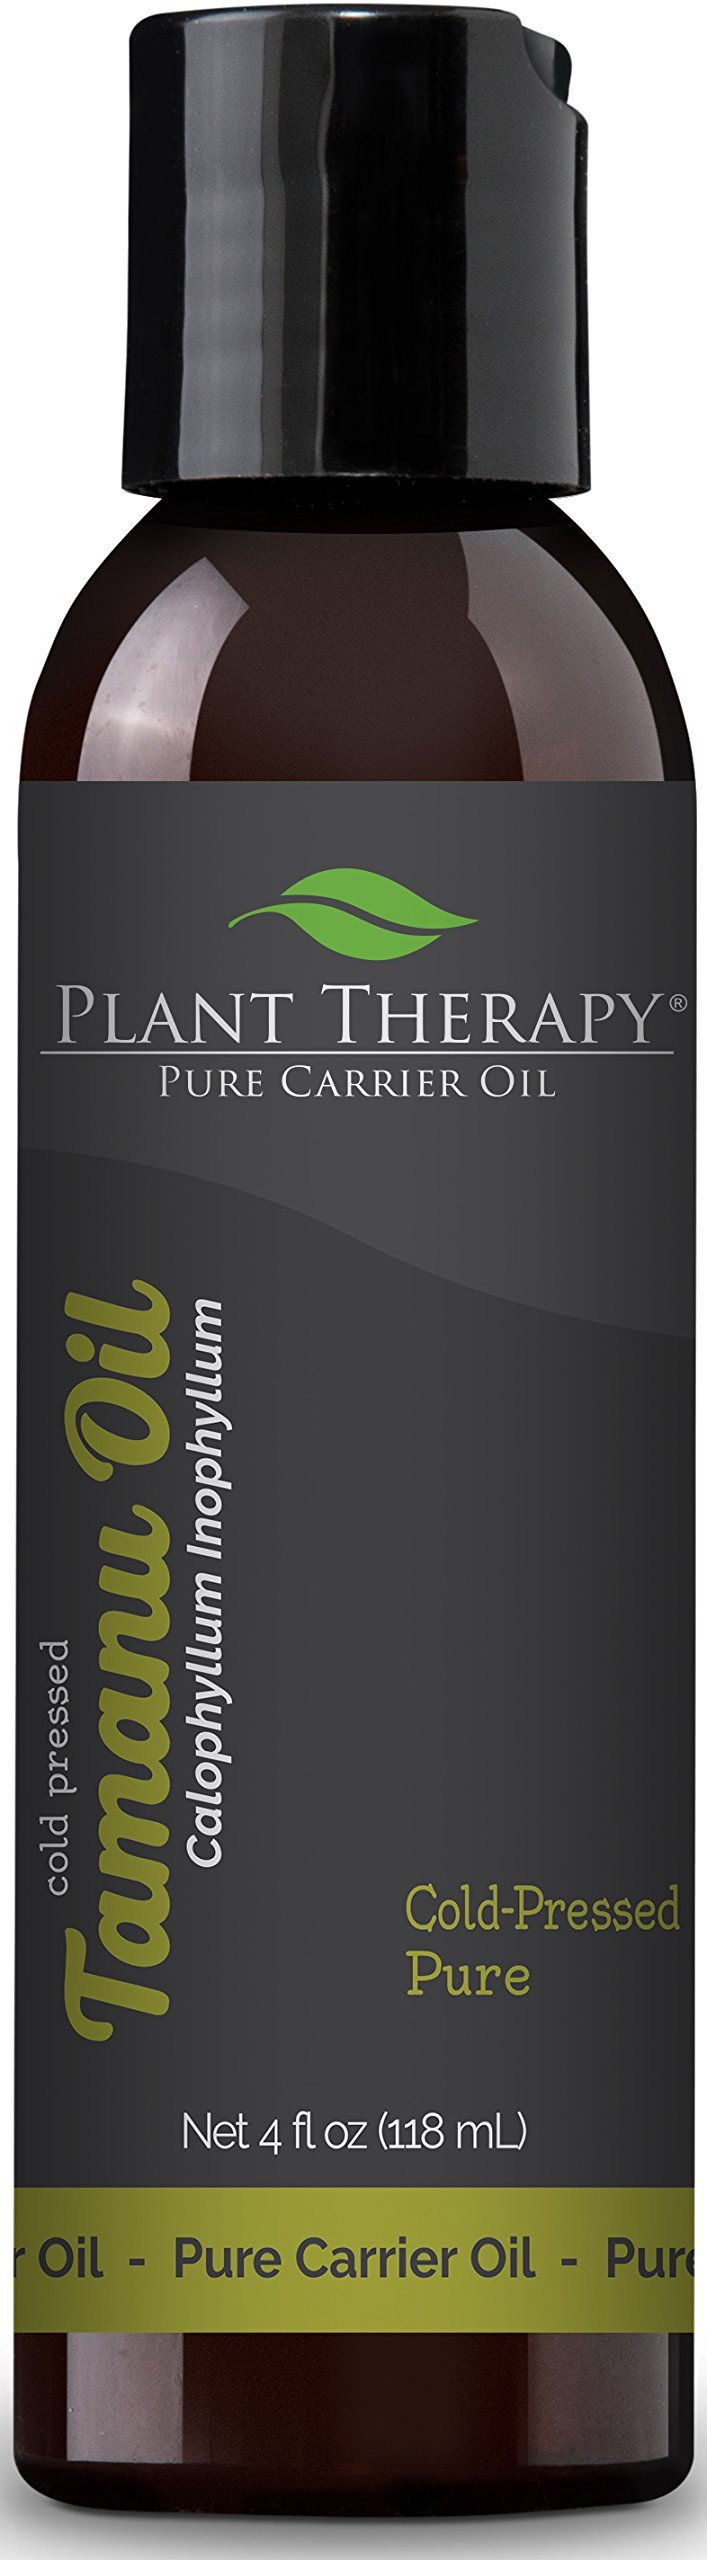 Plant Therapy Tamanu Carrier Oil 4 oz Base Oil for Aromatherapy, Essential Oil or Massage use by Plant Therapy